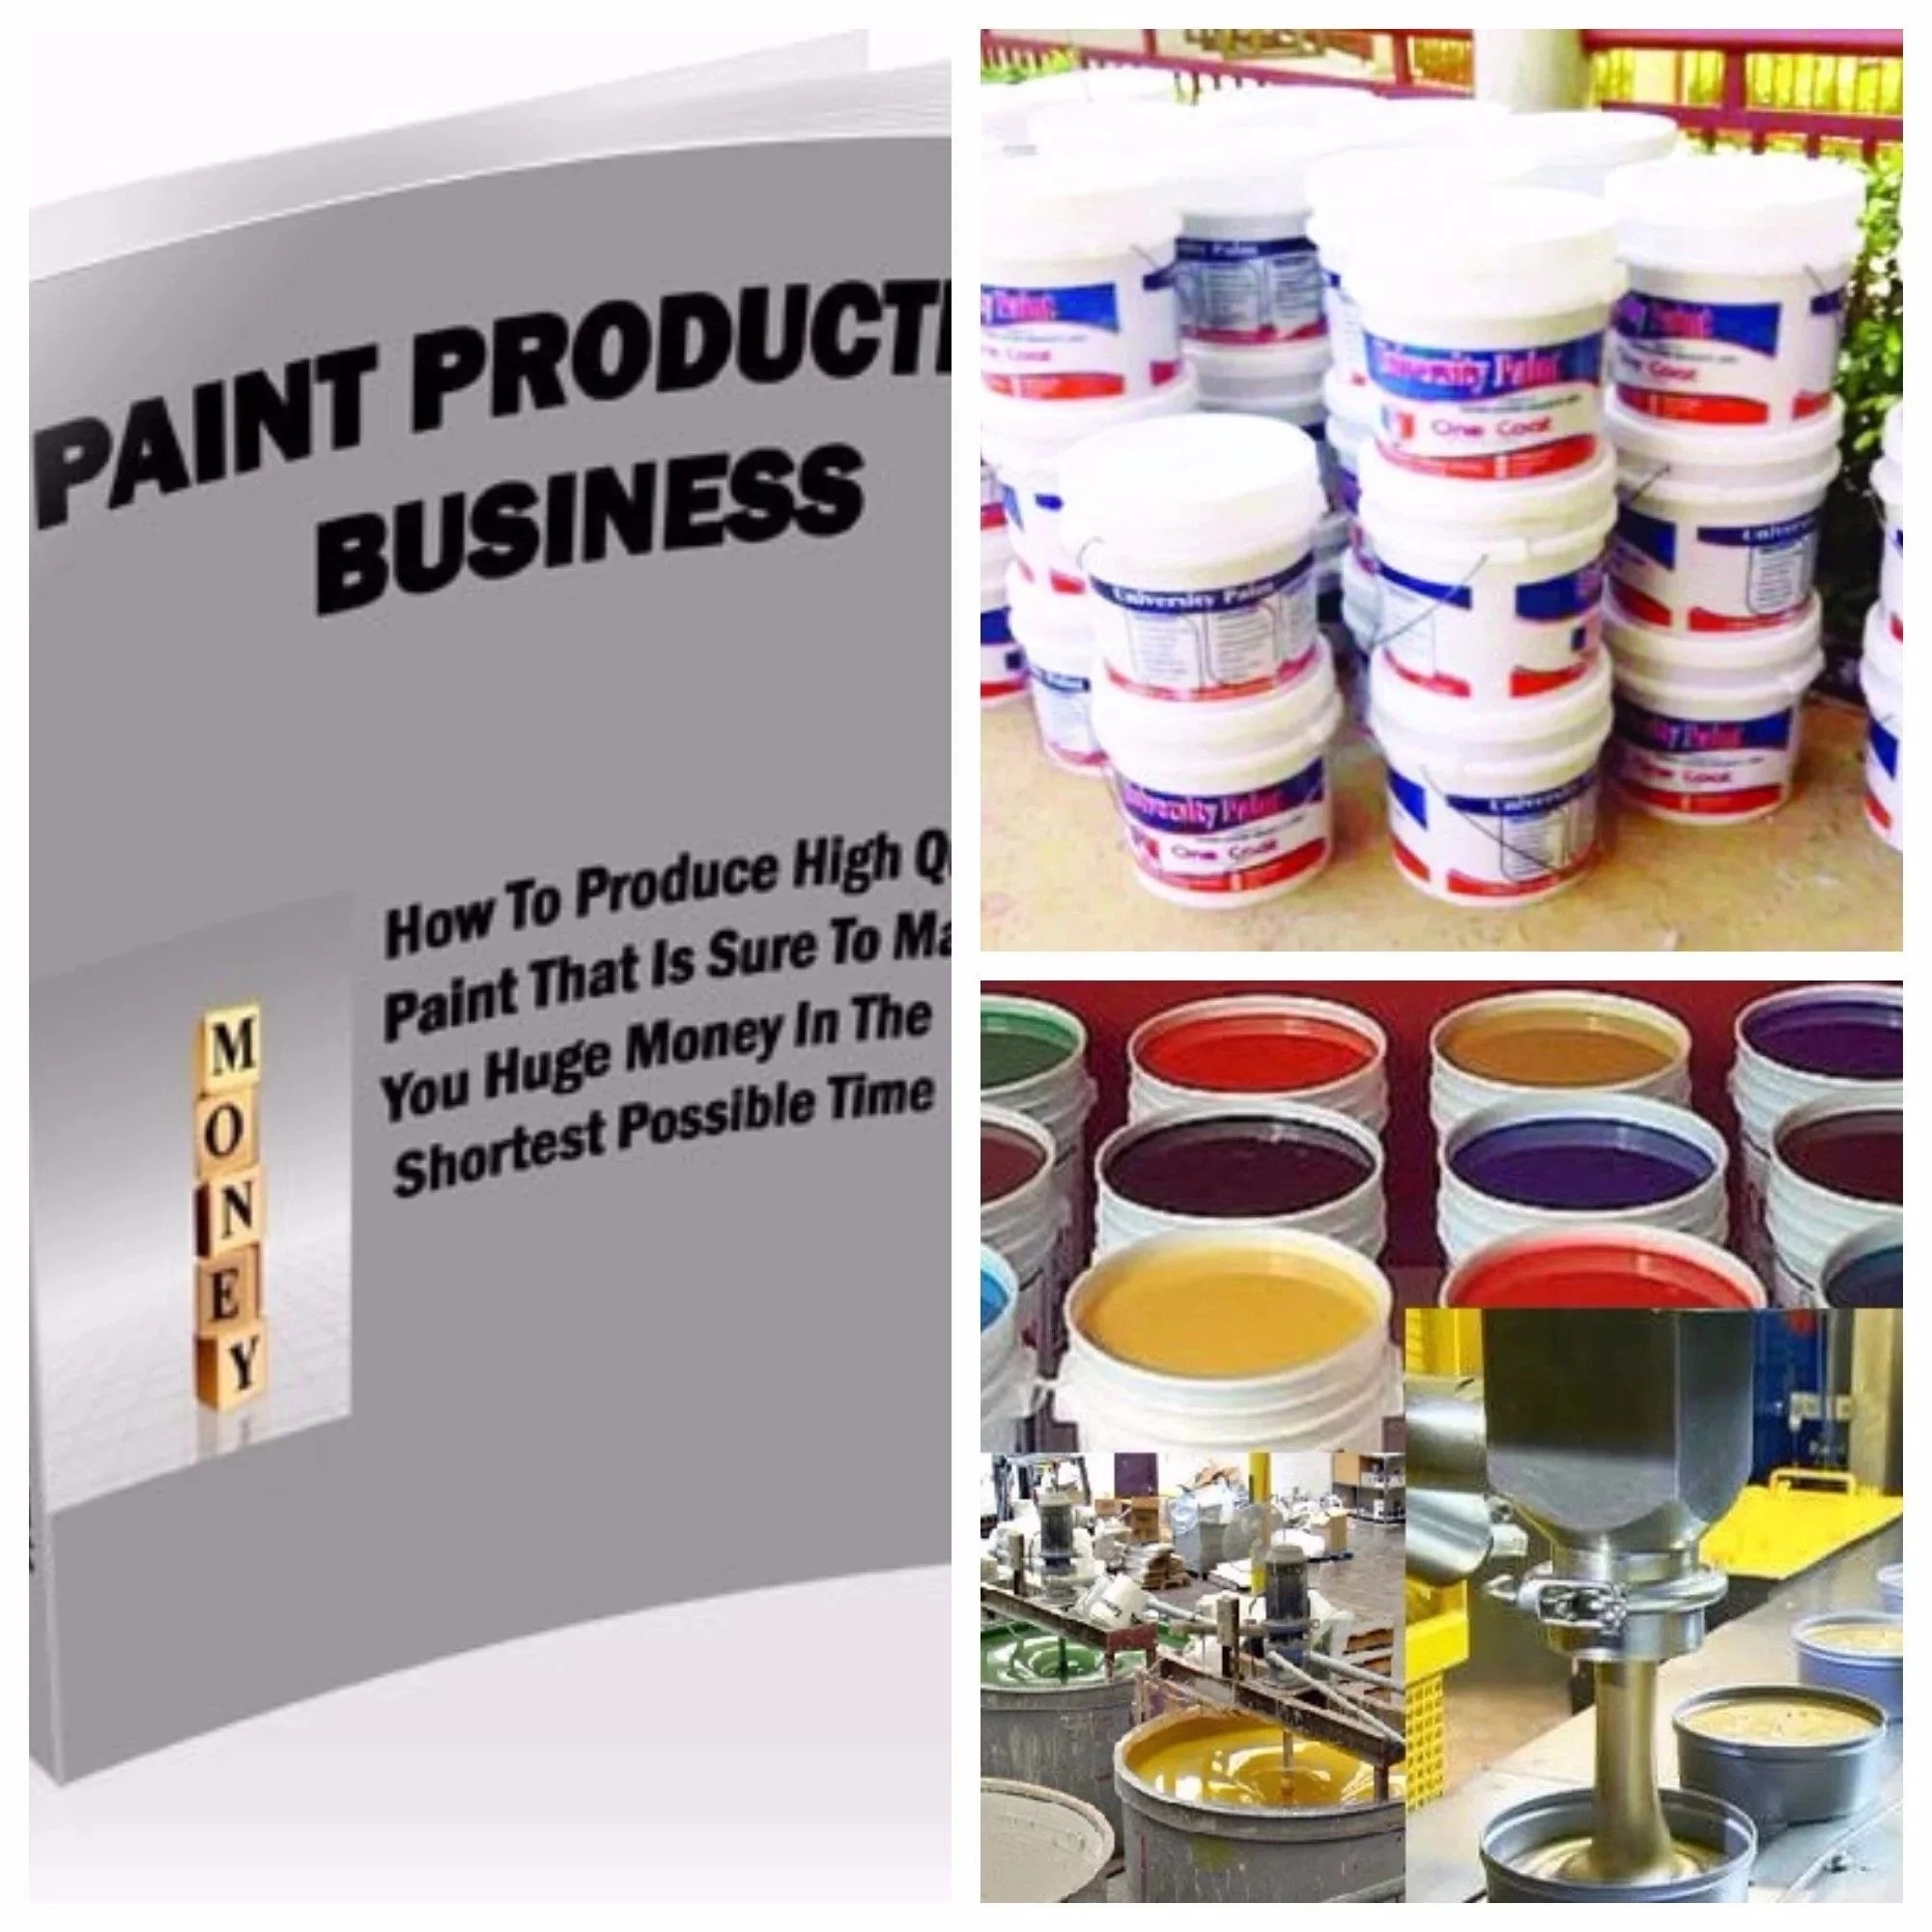 How to Produce Paint in Nigeria